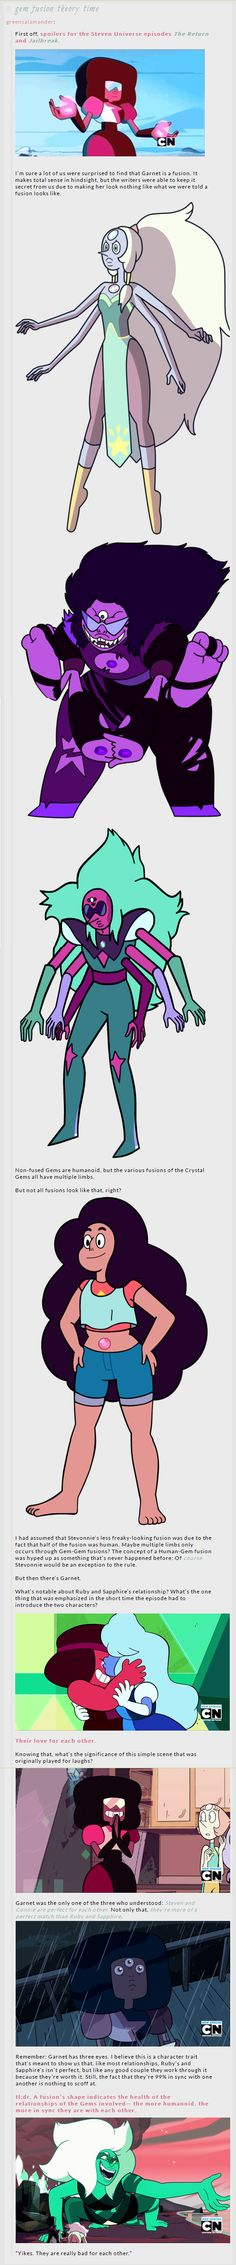 I don't think she has the third eye because of not fusing completely together but because it's the future vision eye and is unlike a regular seeing eye. But the rest of it makes a lot of sense!